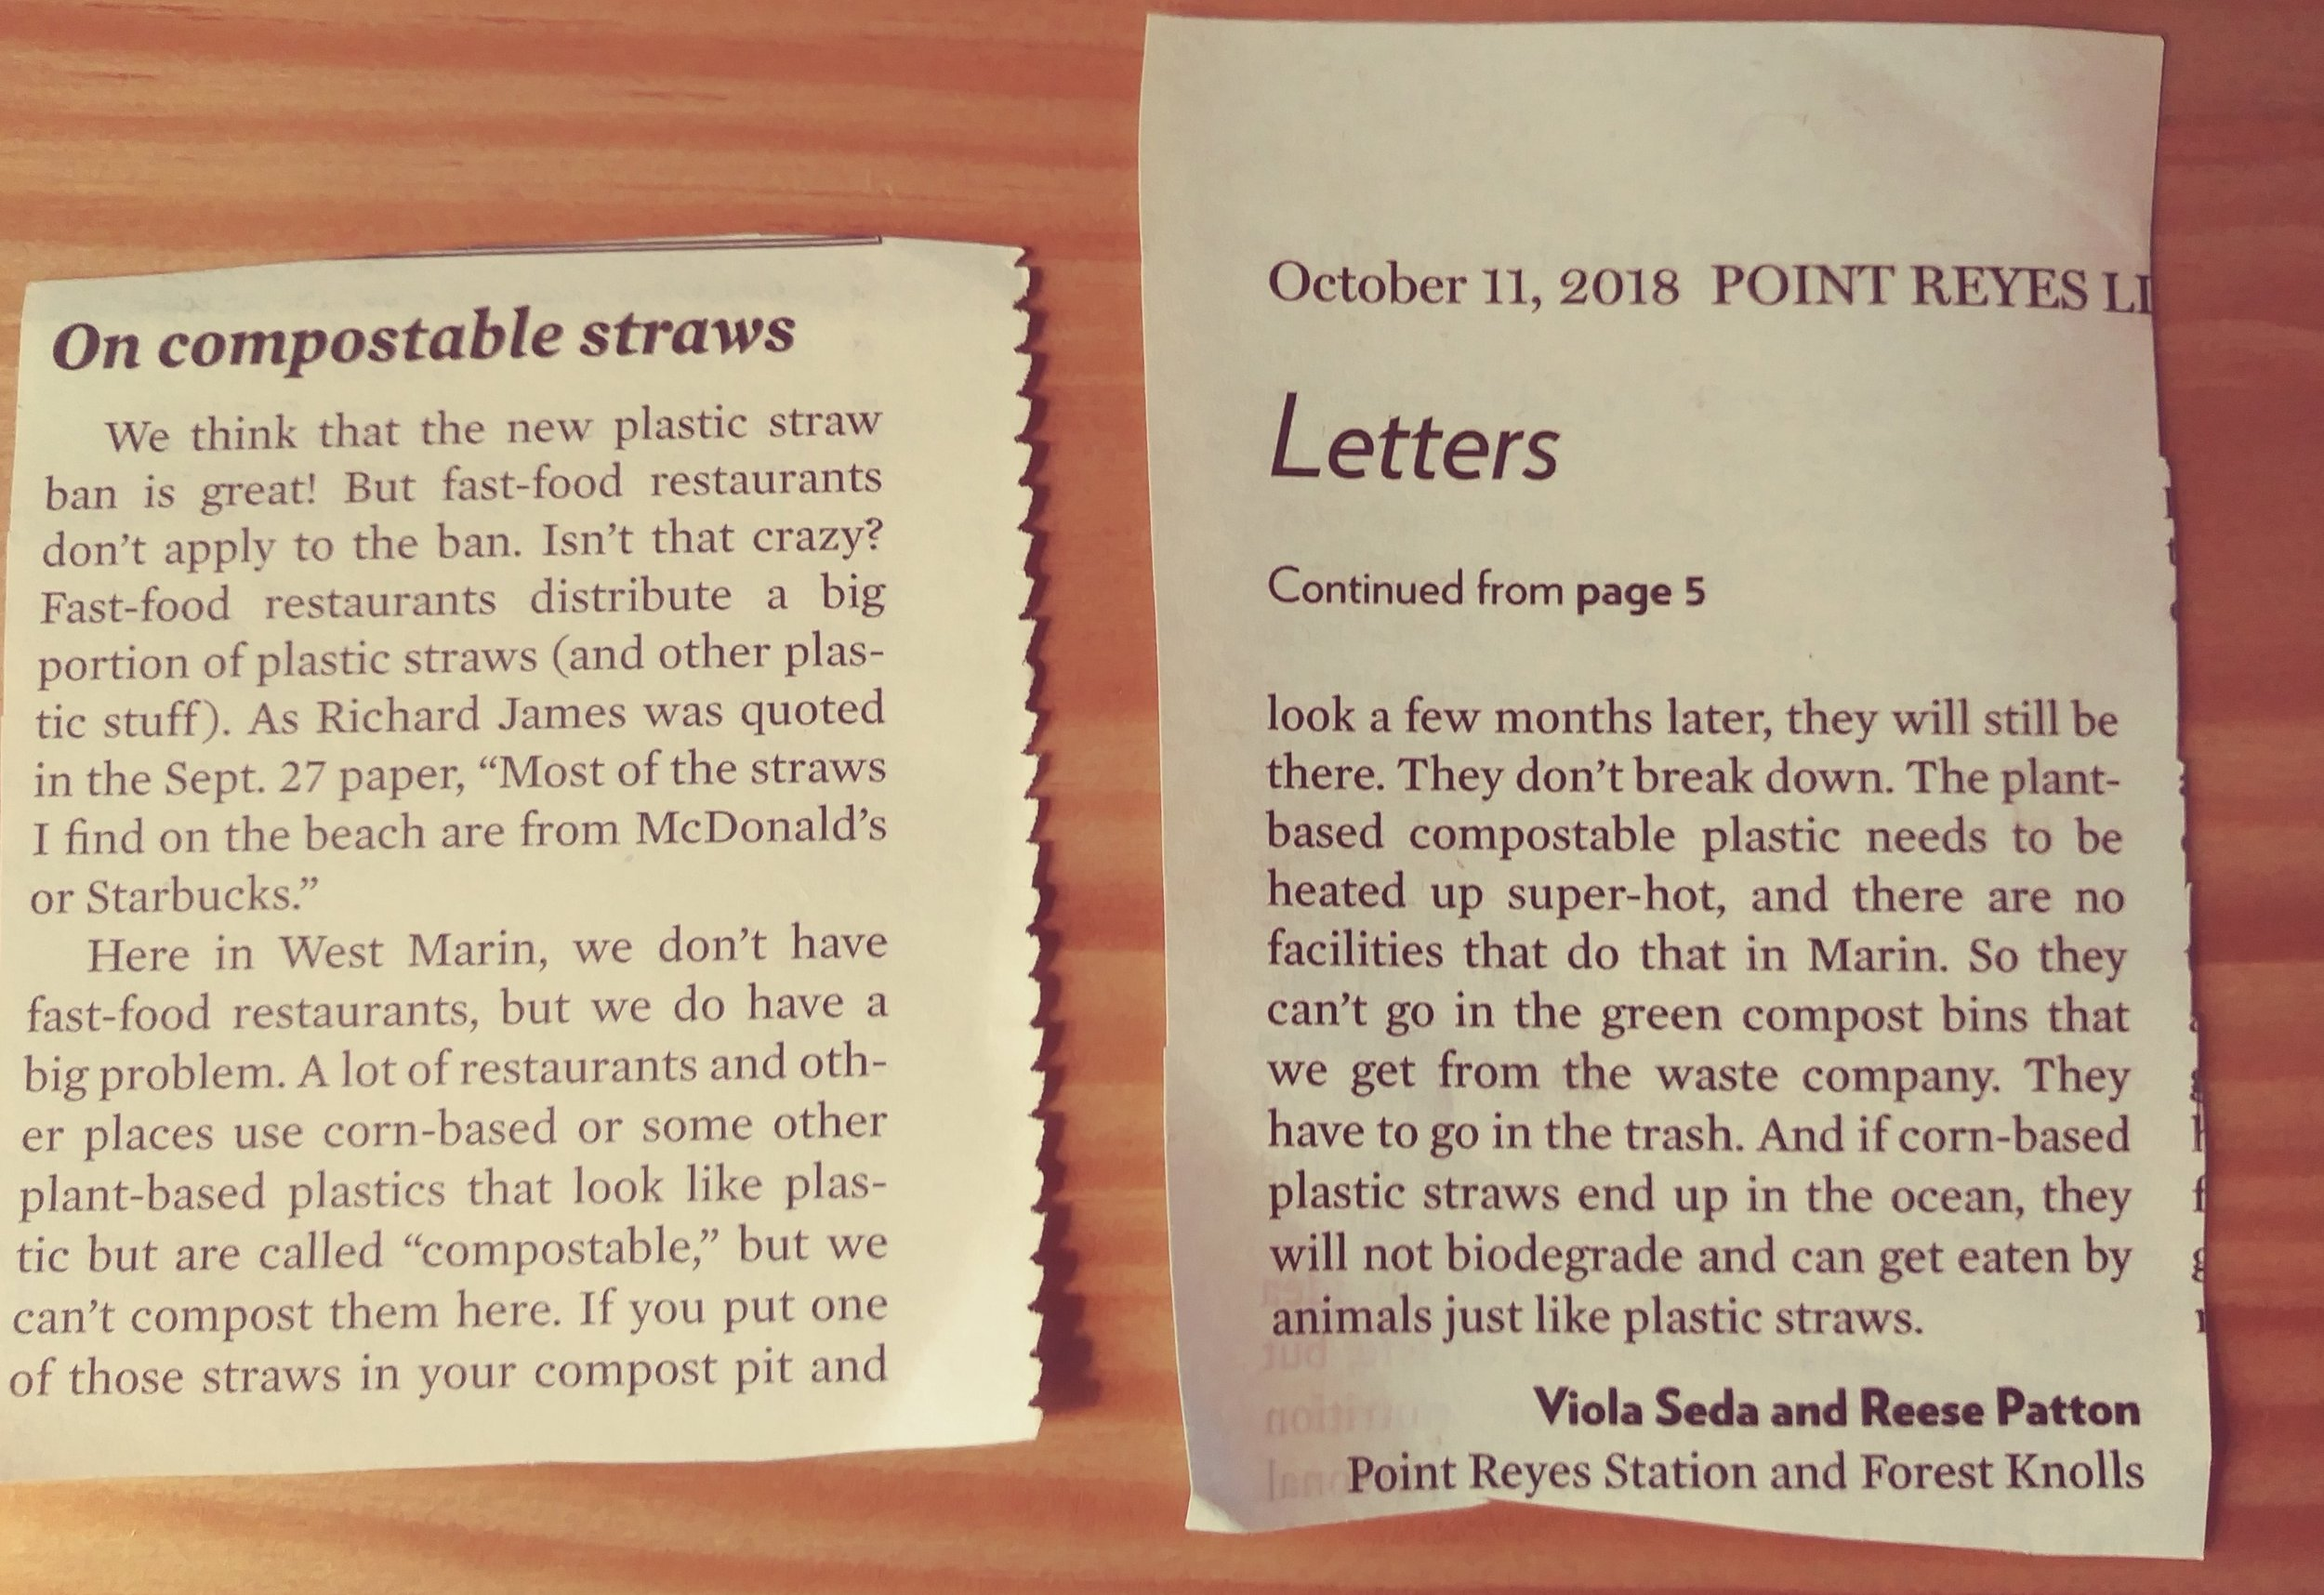 Our letter dated October 11, 2018 to the Point Reyes Light after September 2018 article re: West Marin ahead of straw ban with our concern about using plant-based compostables.